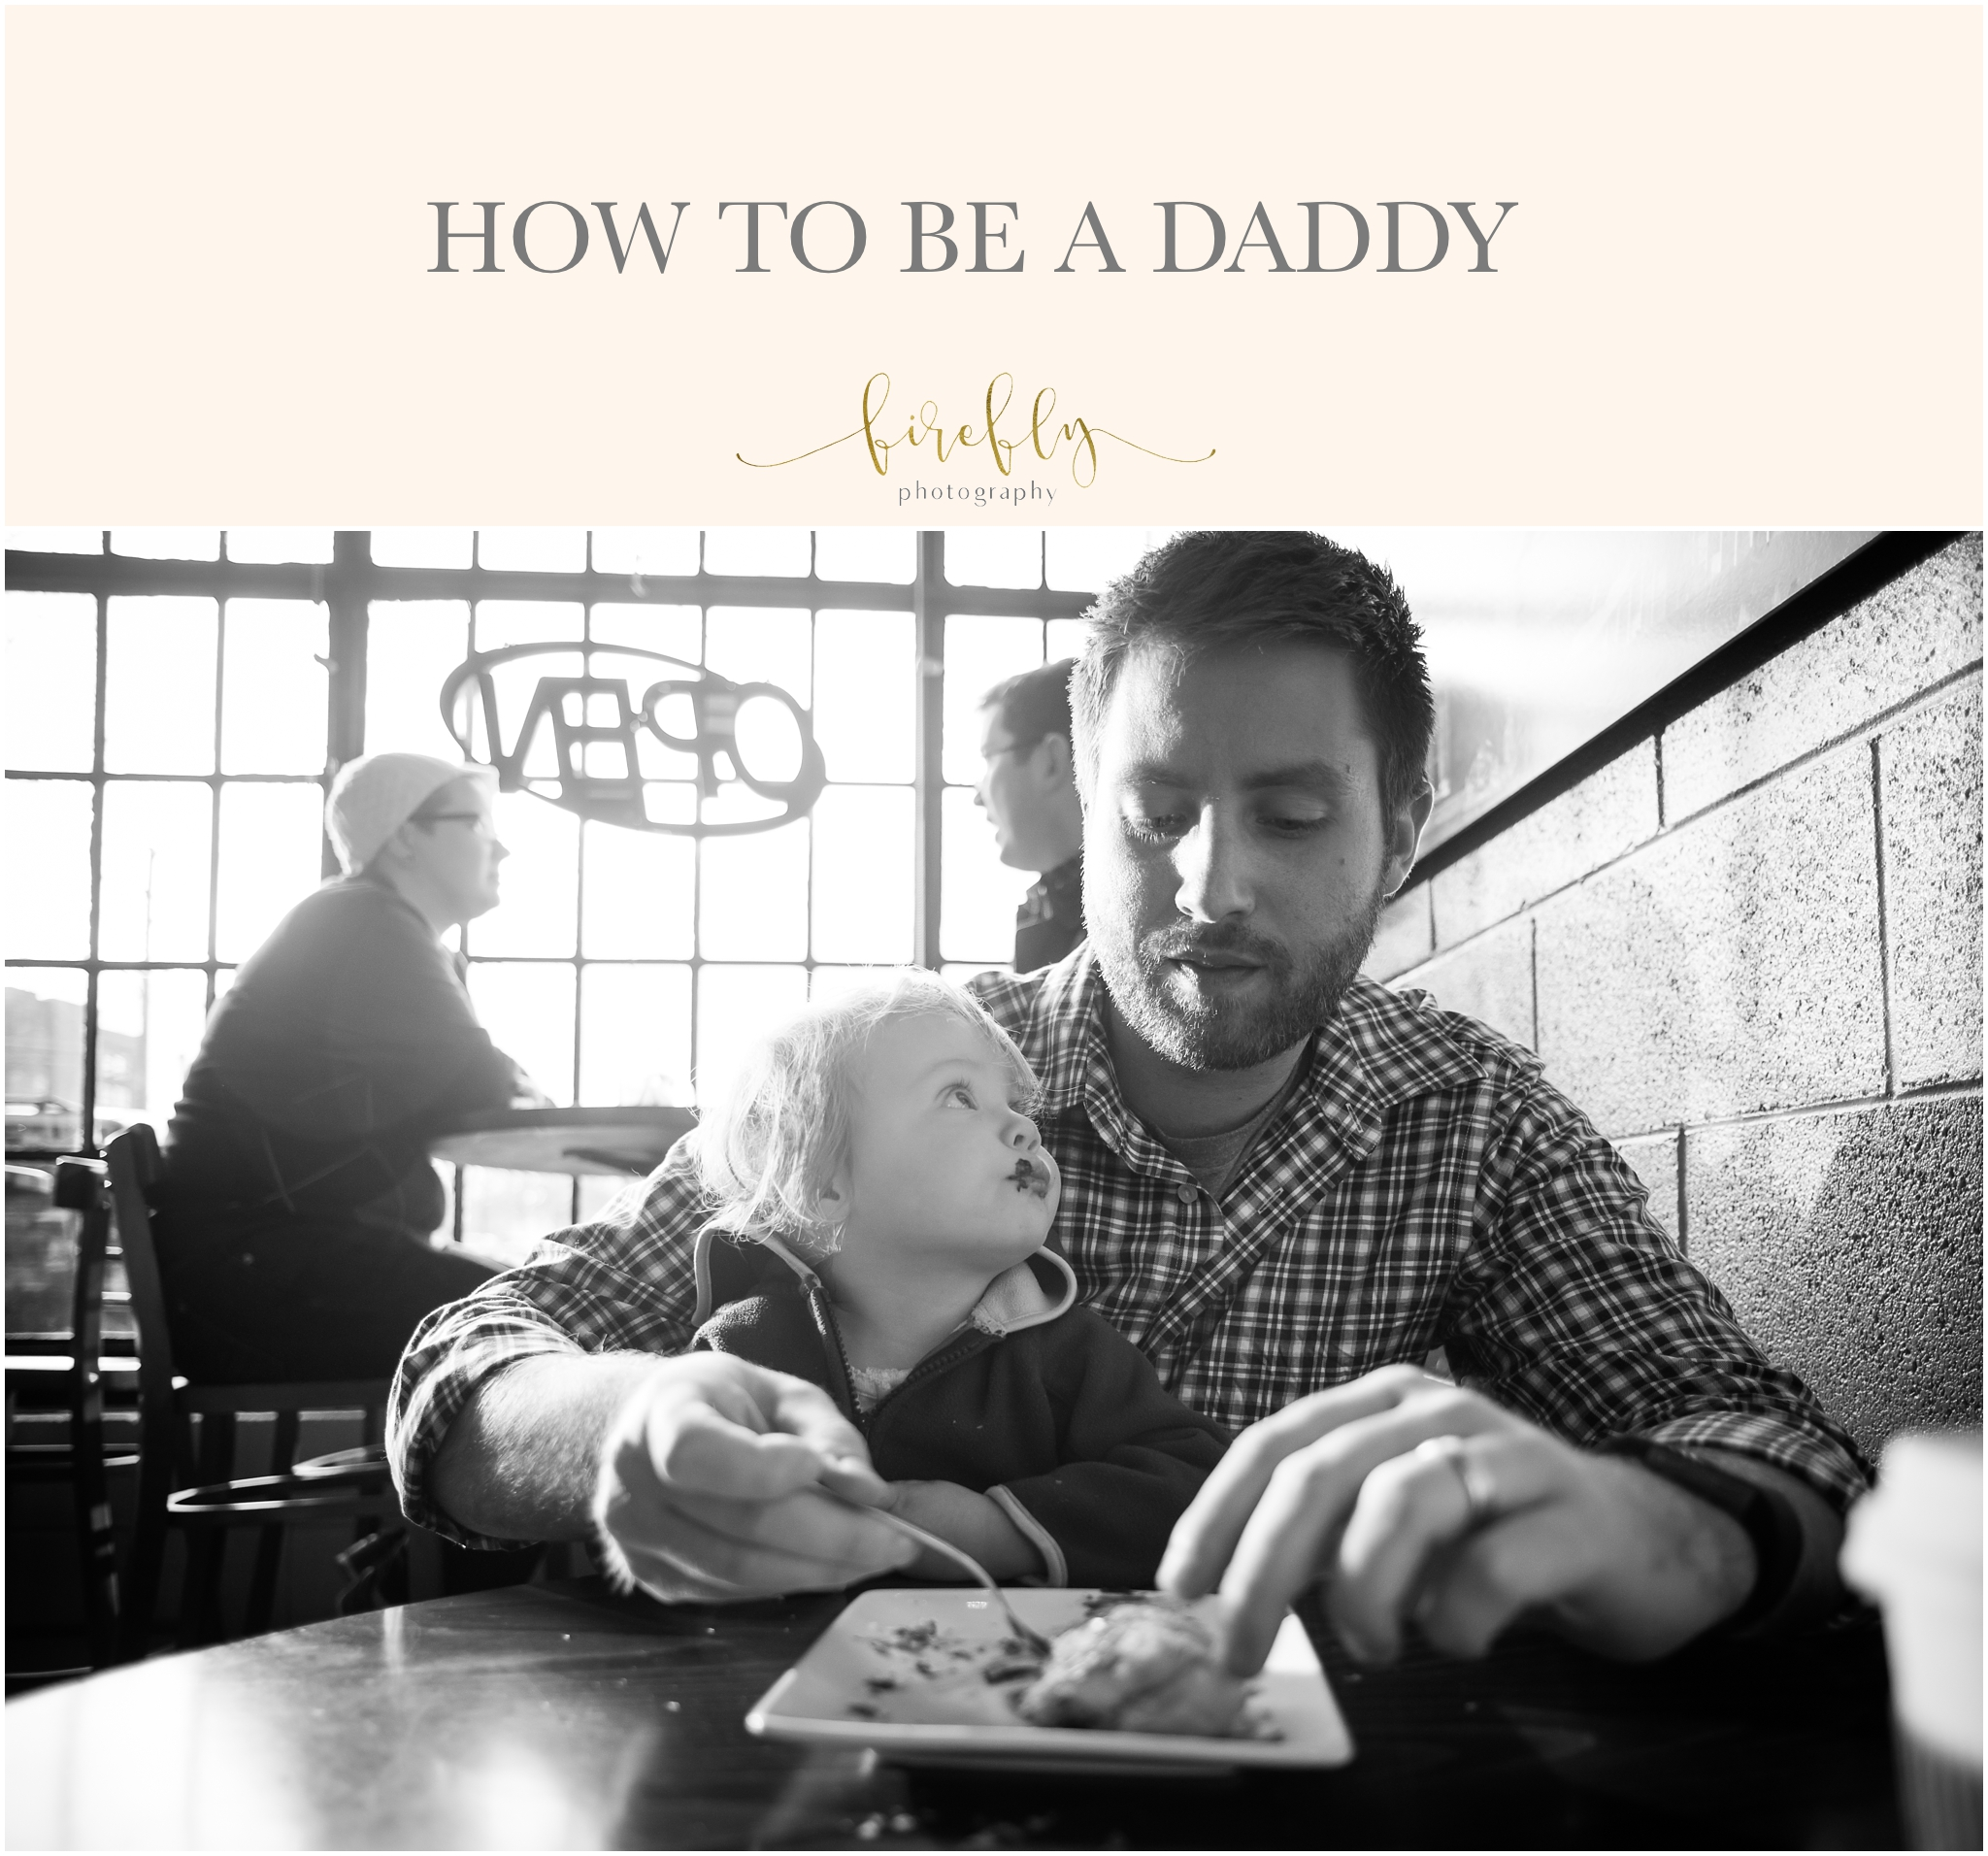 HOW.TO.BE.A.DADDY